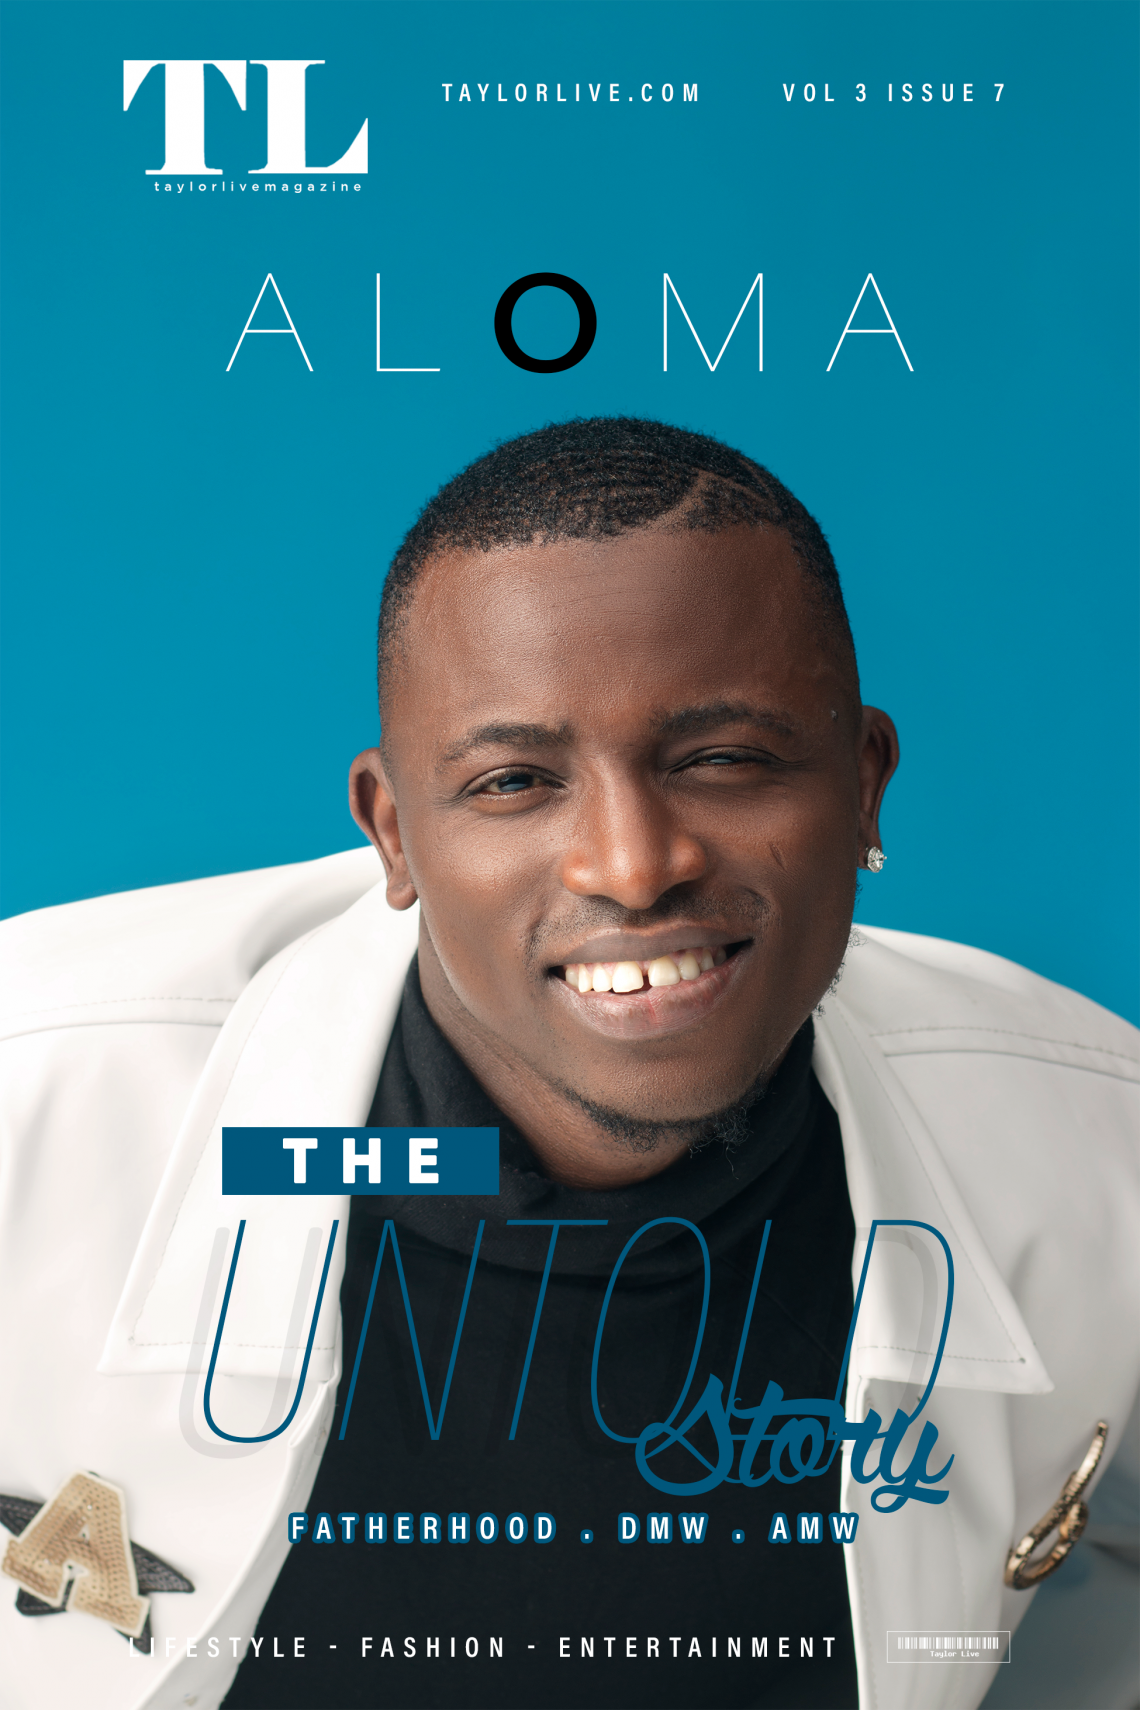 "The Untold Story ""Fatherhood.Dmw.Amw"" – Aloma  Covers Taylor Live Magazine's Latest Issue"